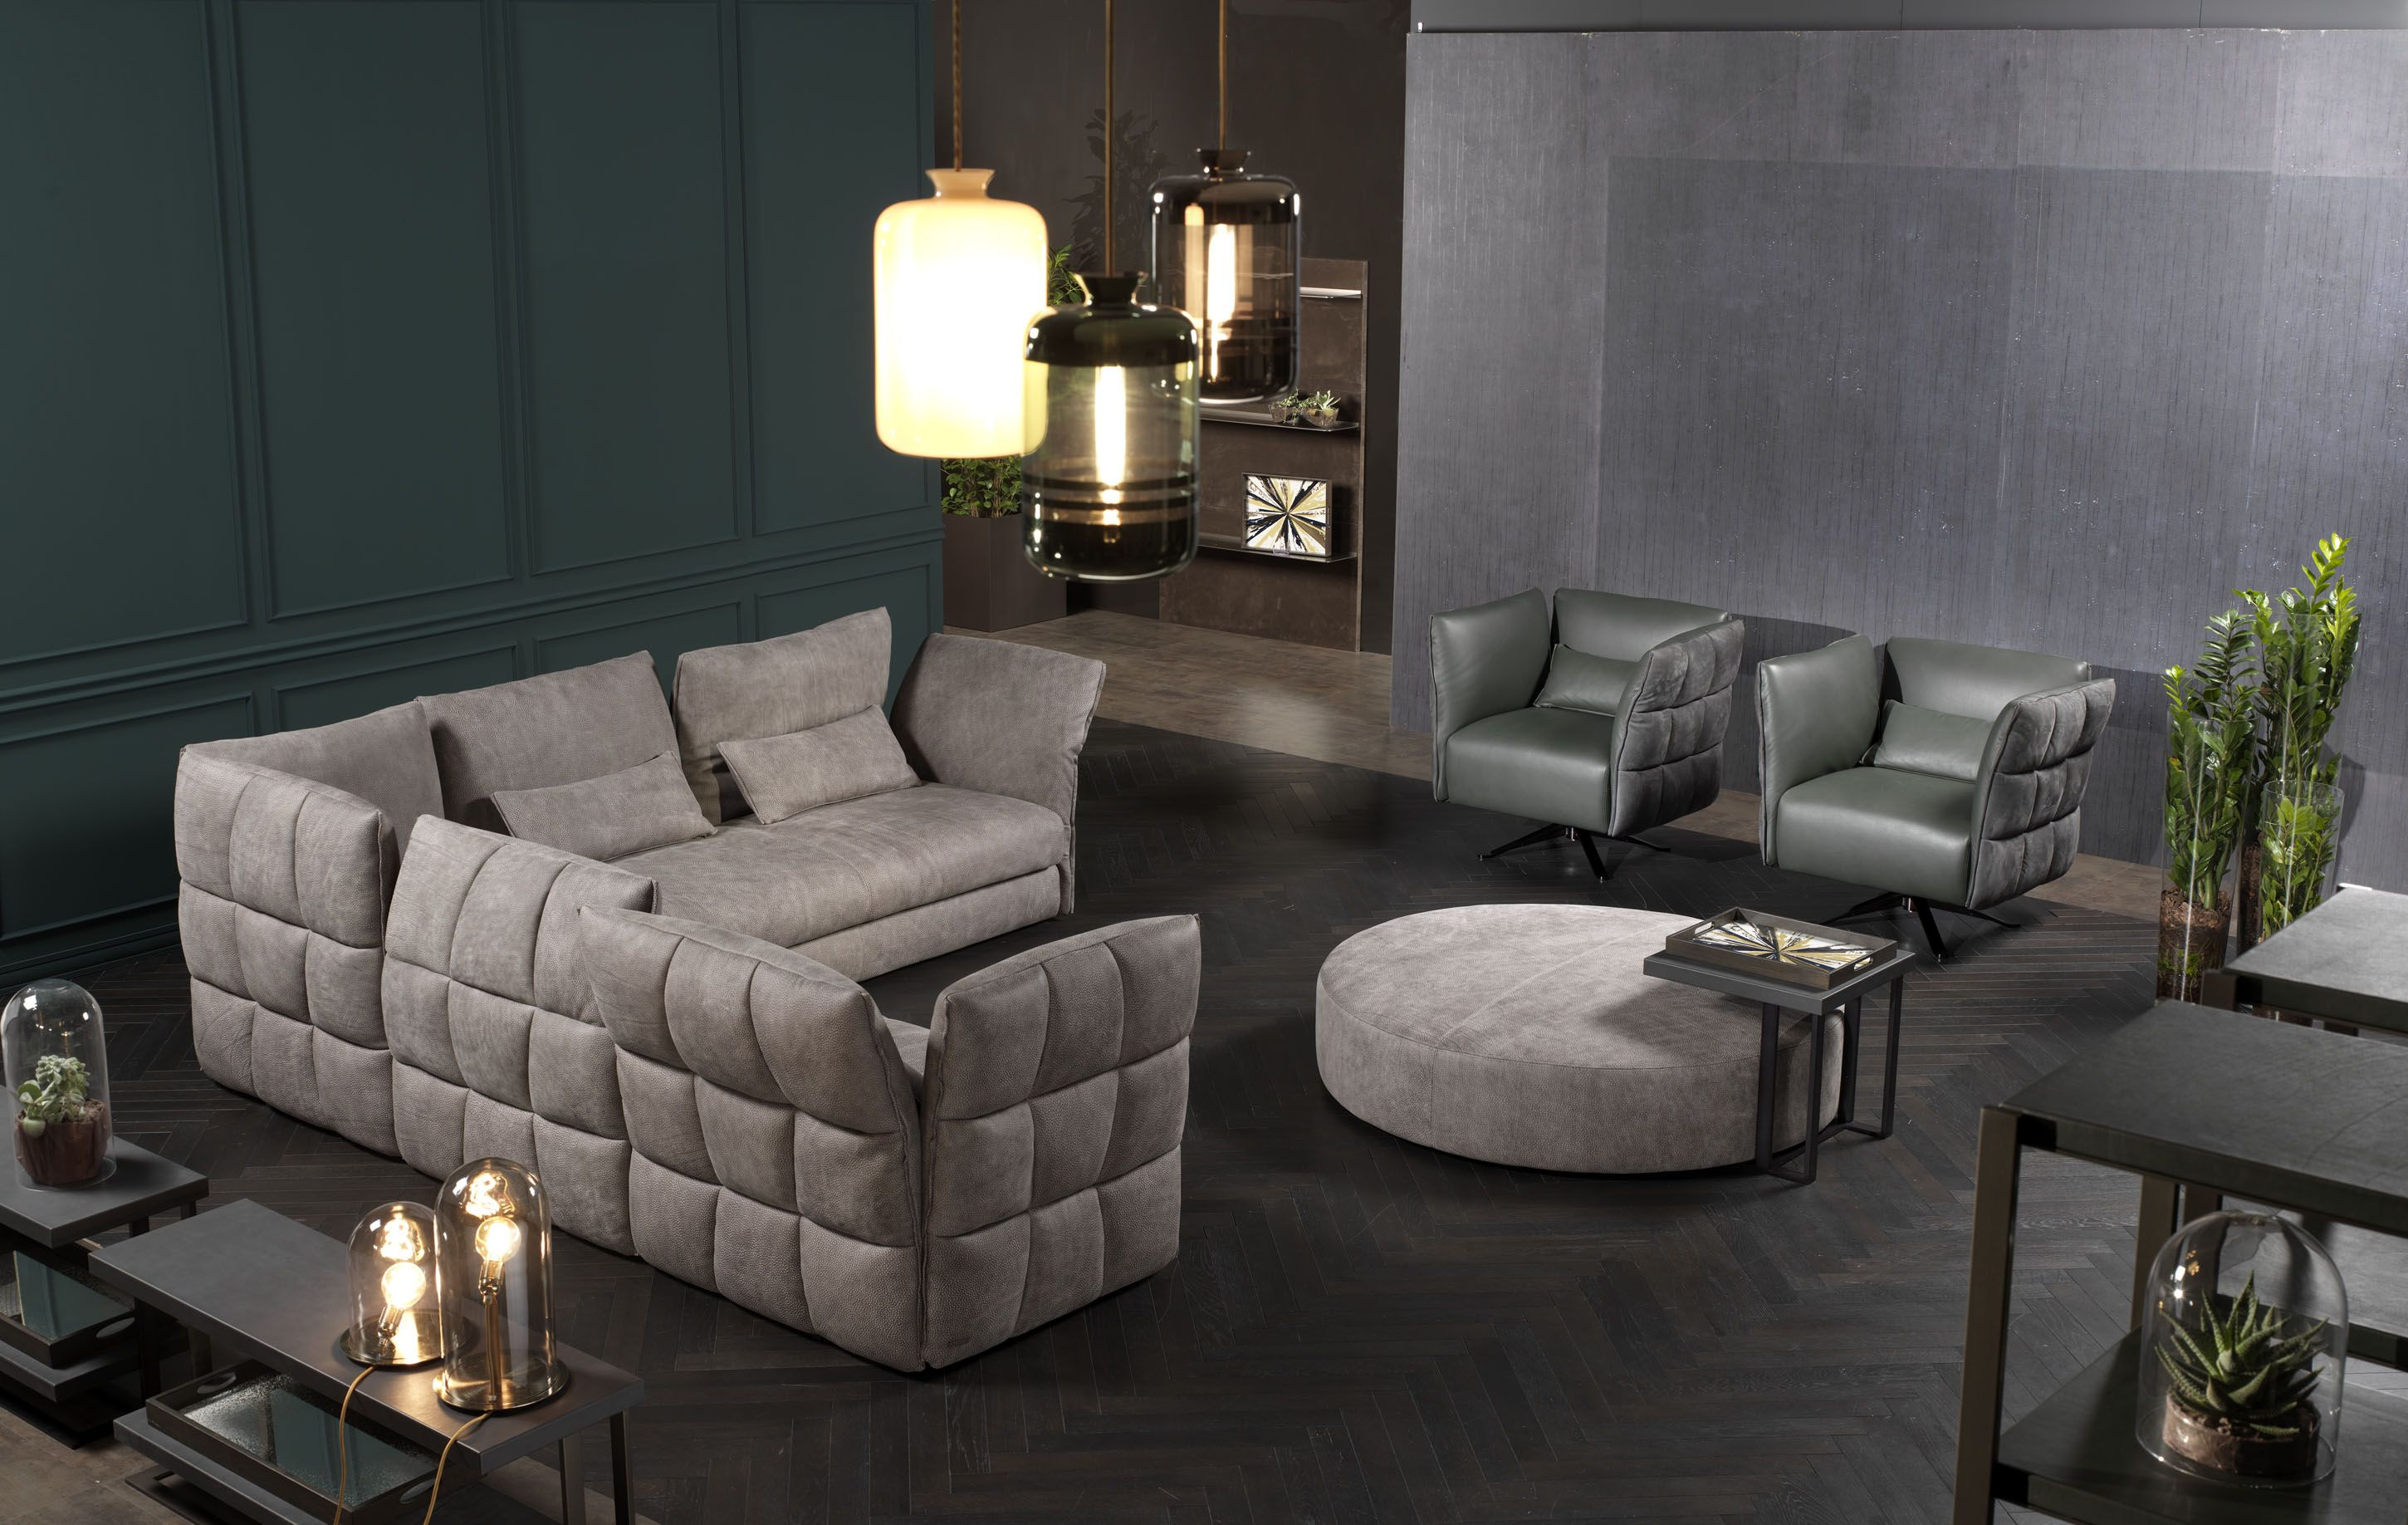 Eva Due Sectional Sofa By Cierre Italy Cadomodern Cierre Luxurylifestyle Luxuryleather Stylish Interiors Madei Contemporary Sofa Furniture Luxe Decor